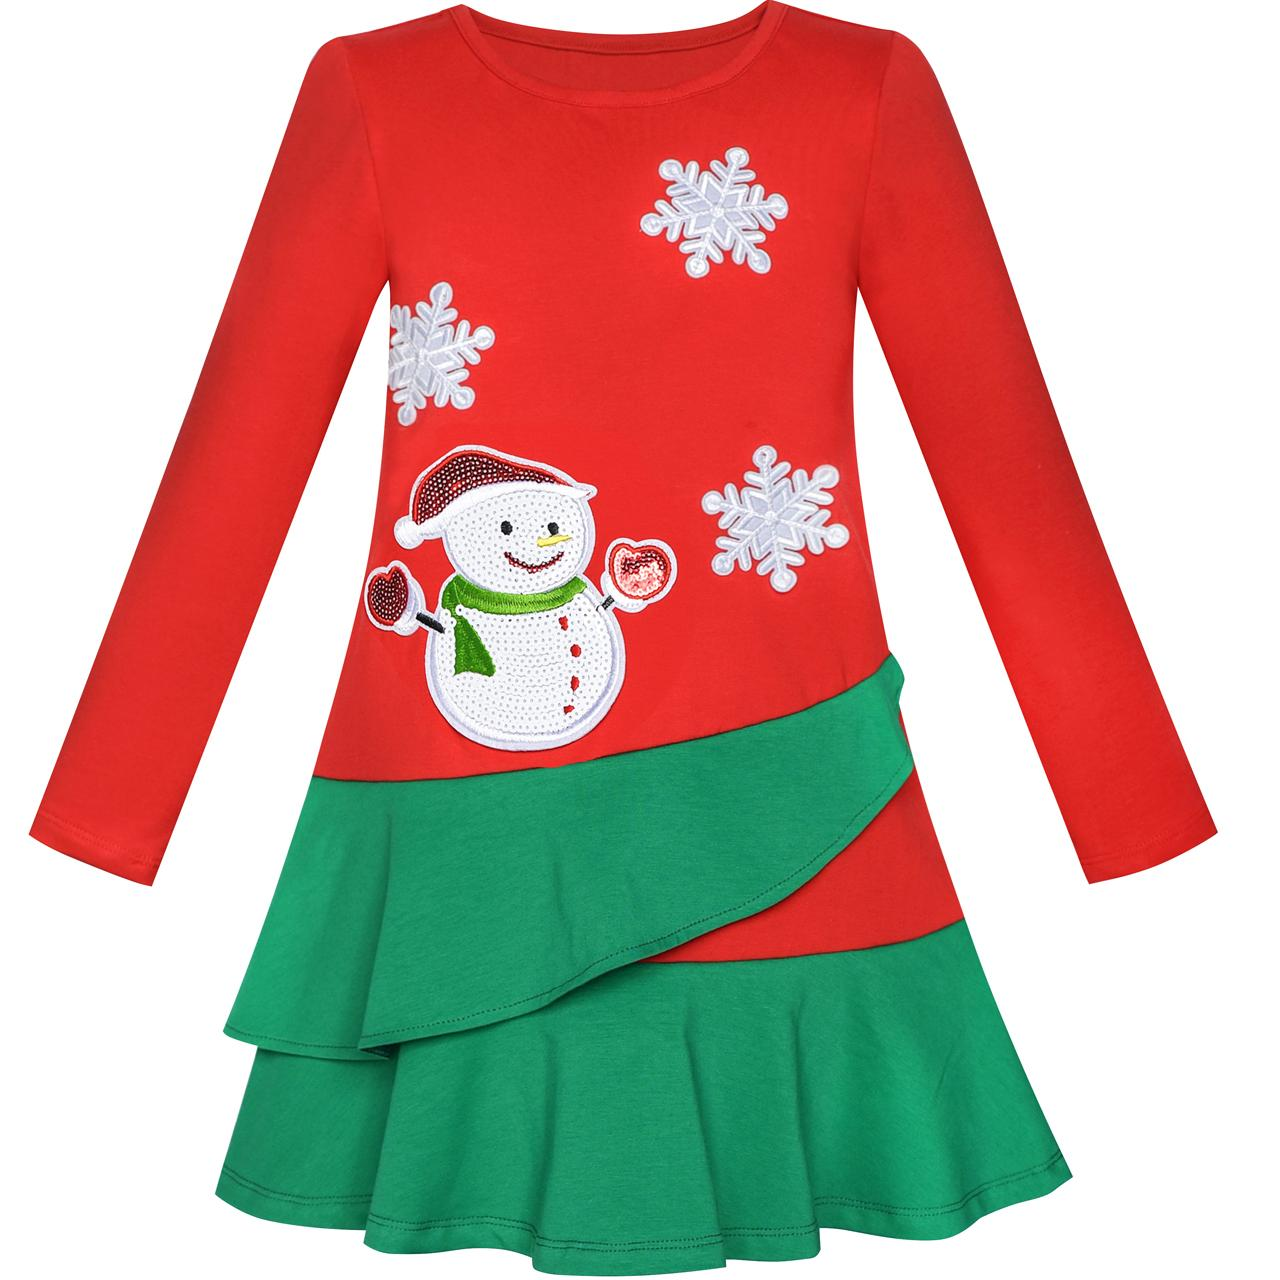 Sunny Fashion Girls Dress Long Sleeve Christmas Snowman Holiday Party Cotton 2018 Summer Princess Wedding Dresses Size 5-12 sunny fashion girls dress princess worsted winter christmas hat lace red 2018 summer wedding party dresses clothes size 4 10